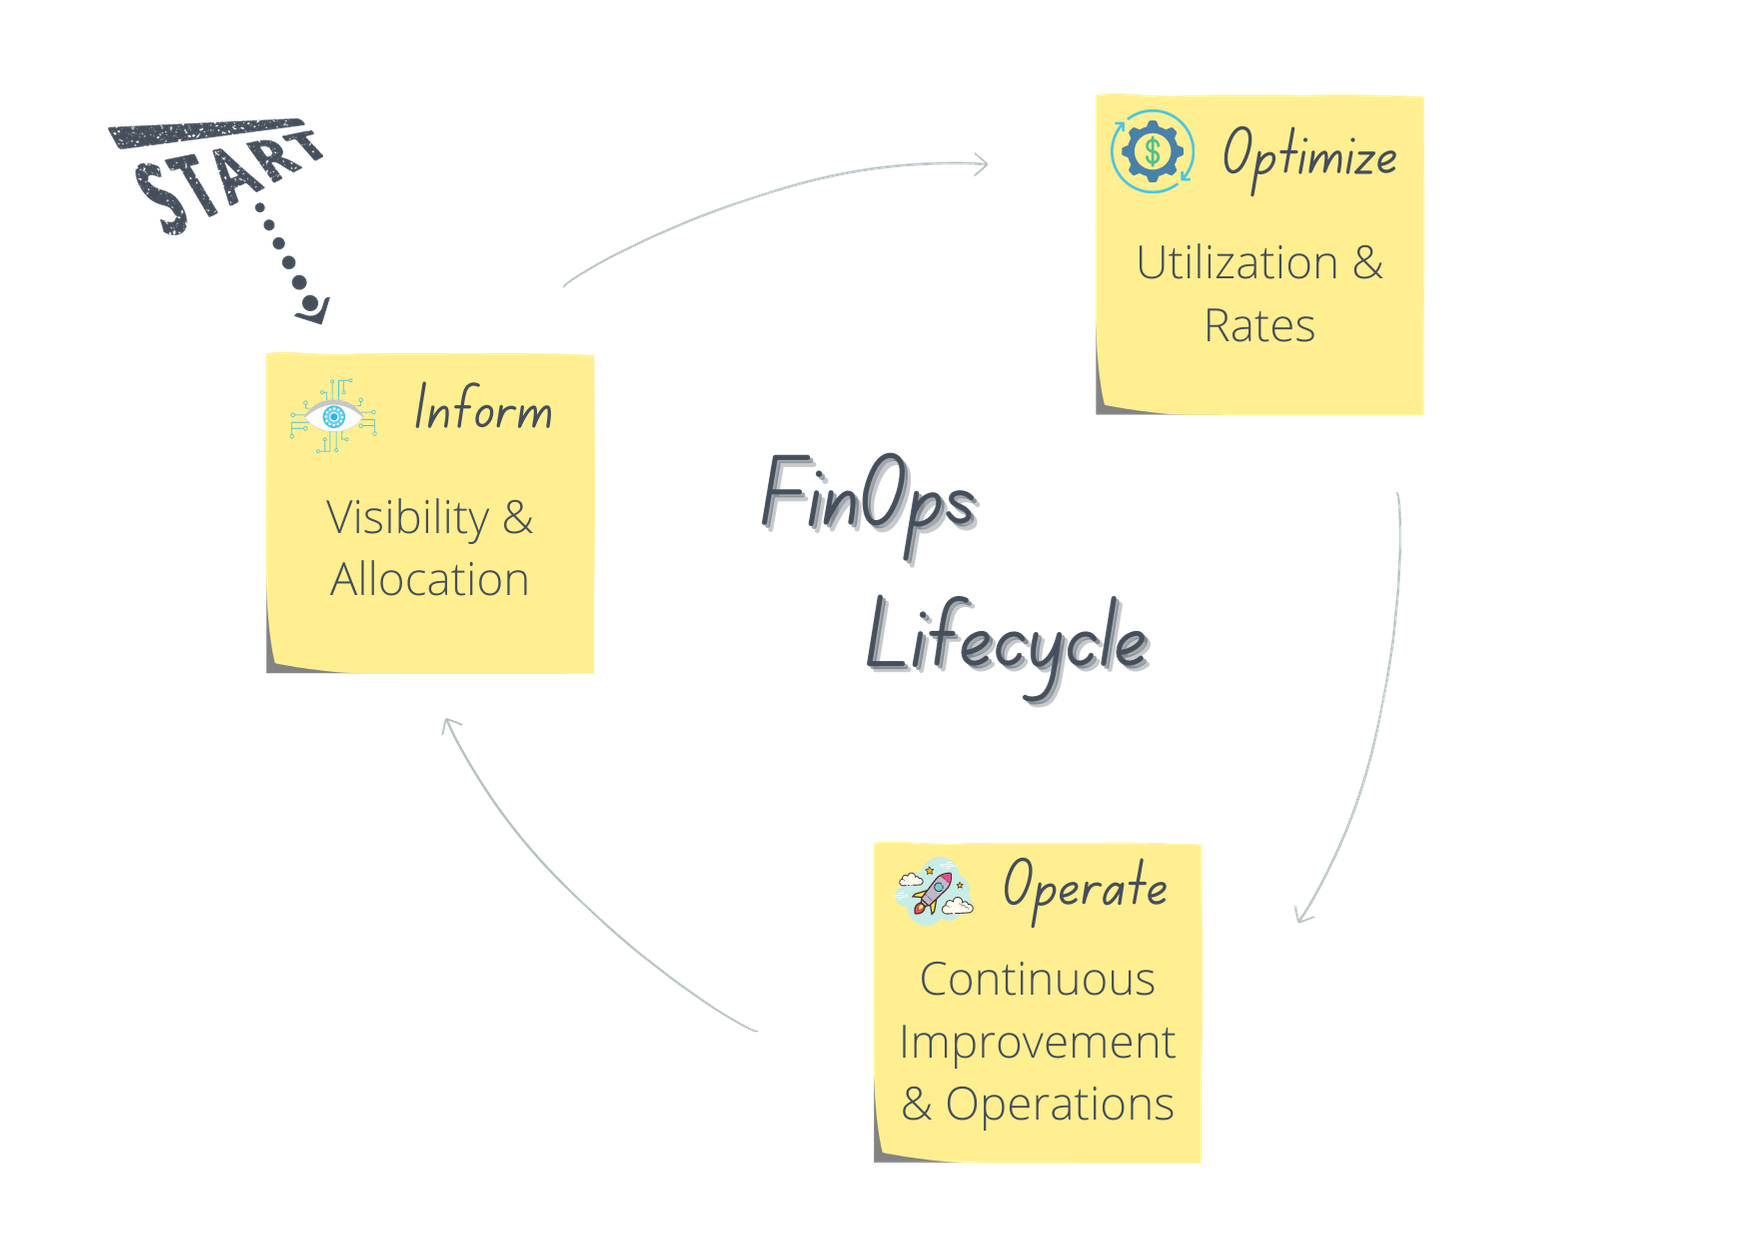 FinOps LifeCycle